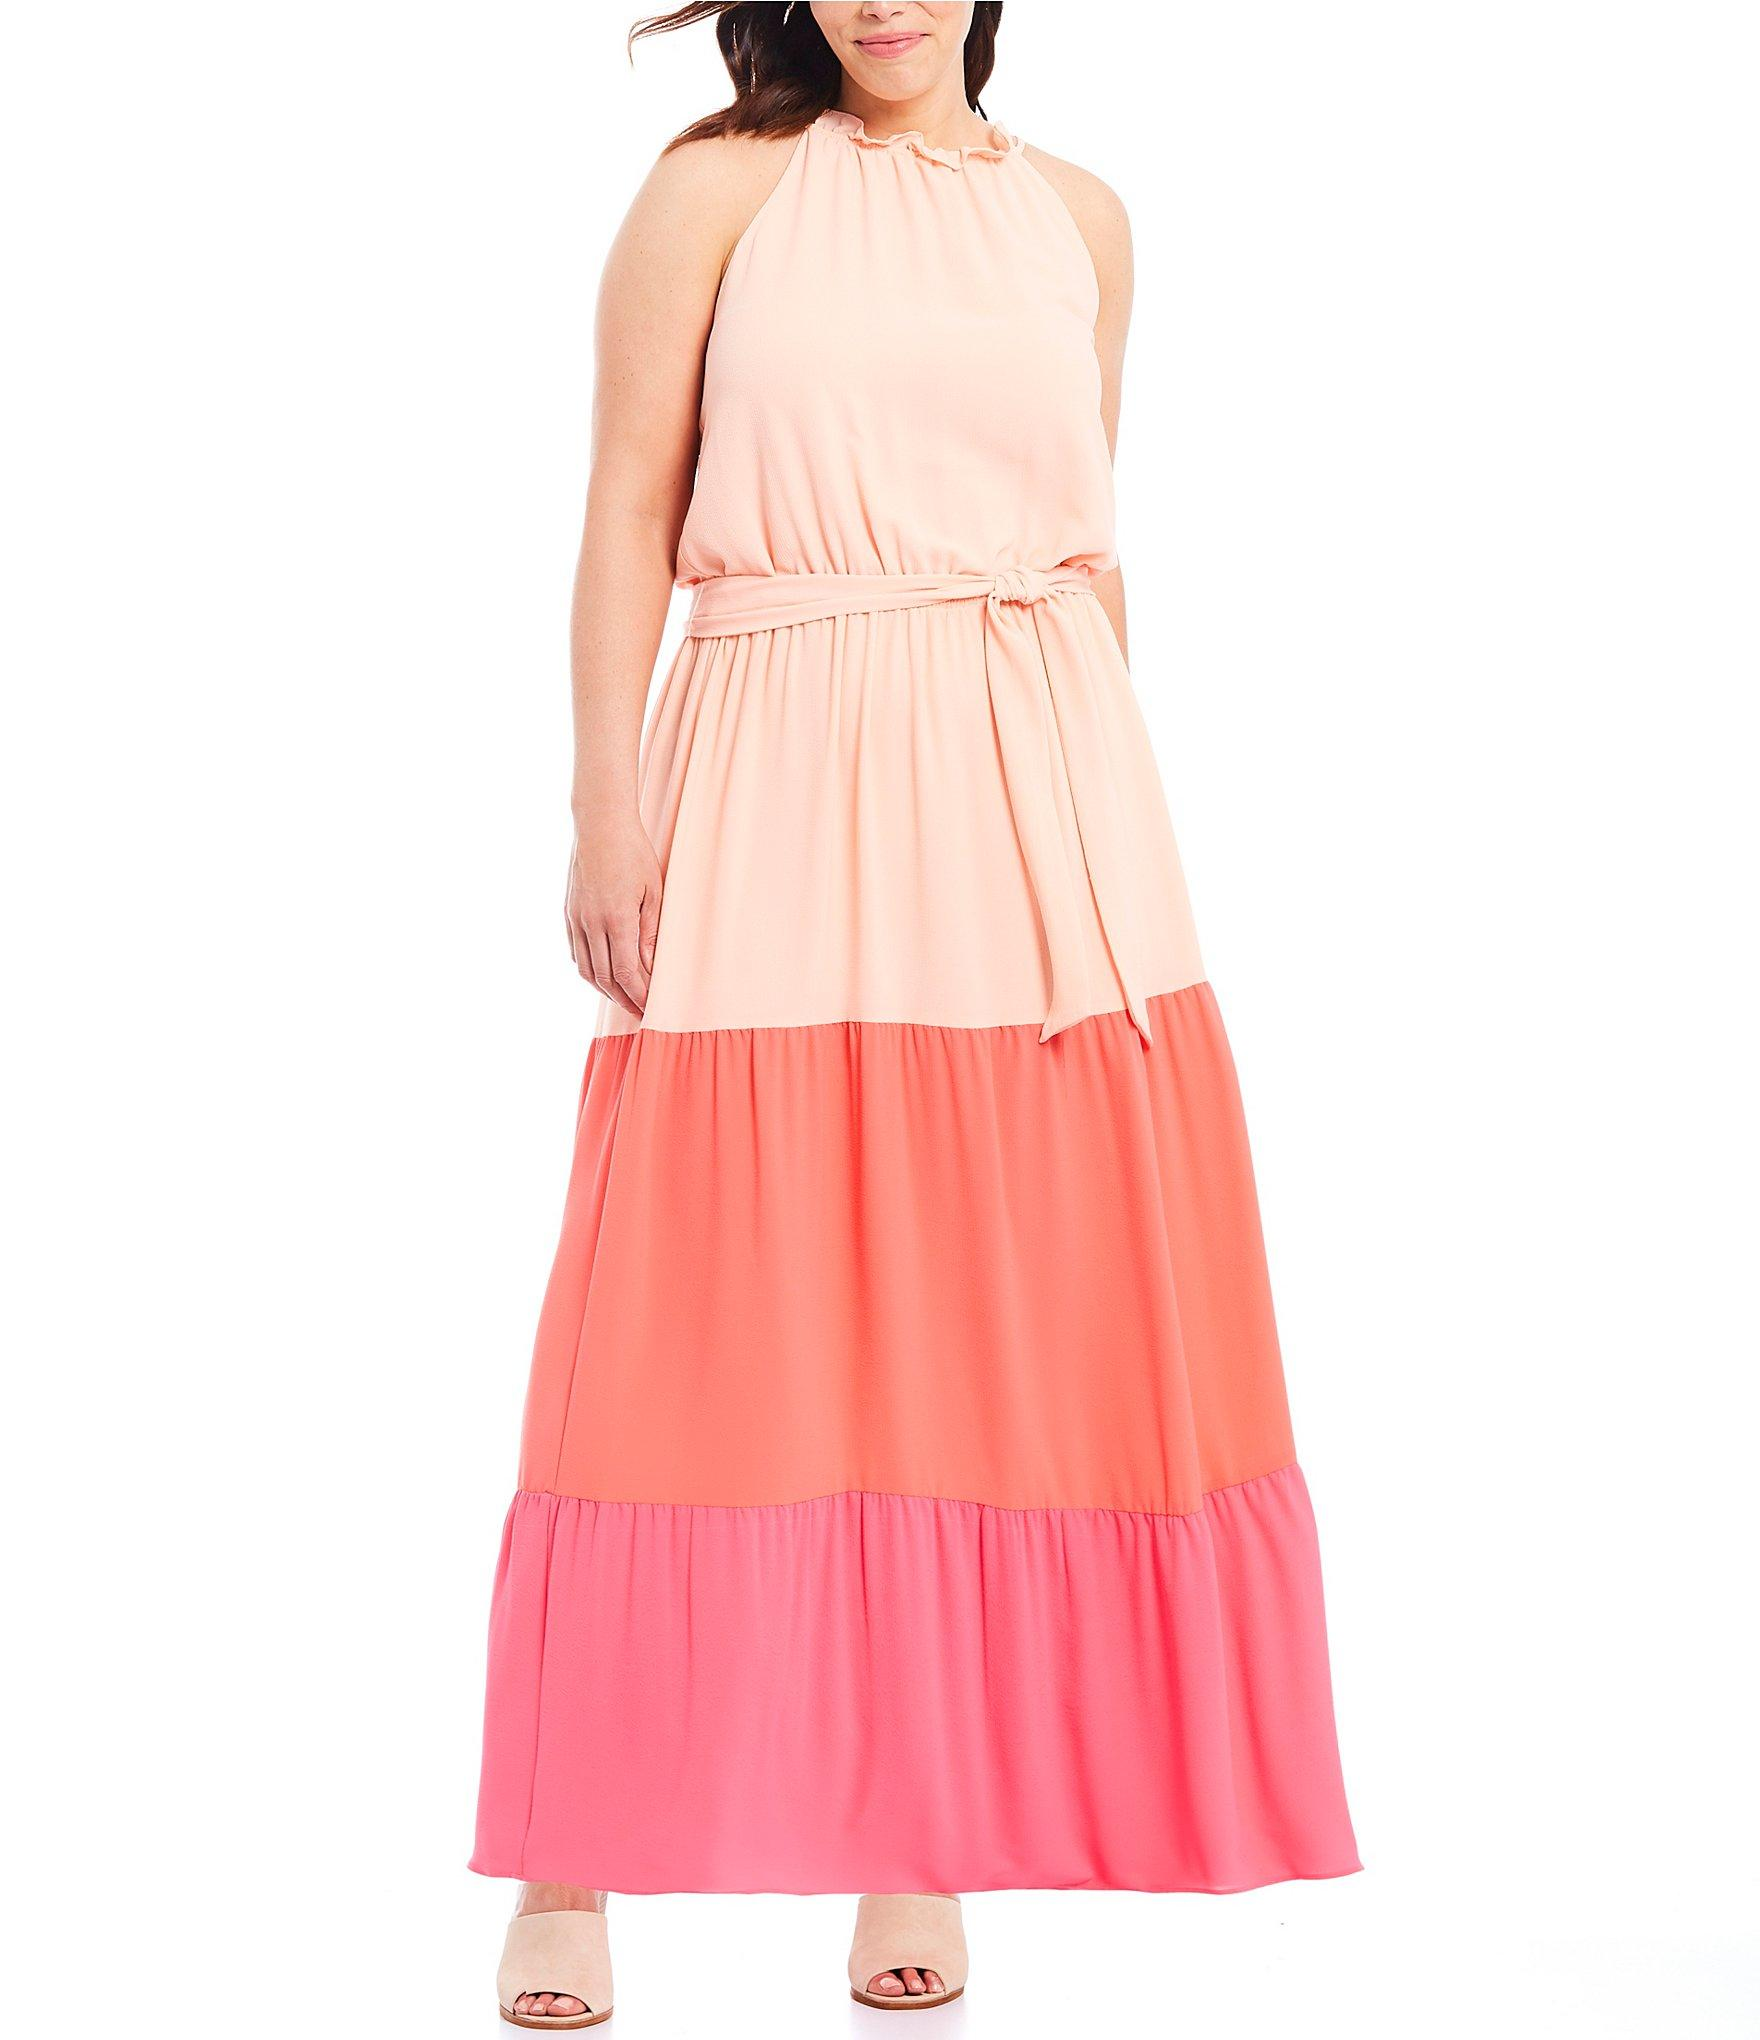 Lyst - Cece Plus Size Colorblock Ruffle Trim Belted Maxi Dress in Pink